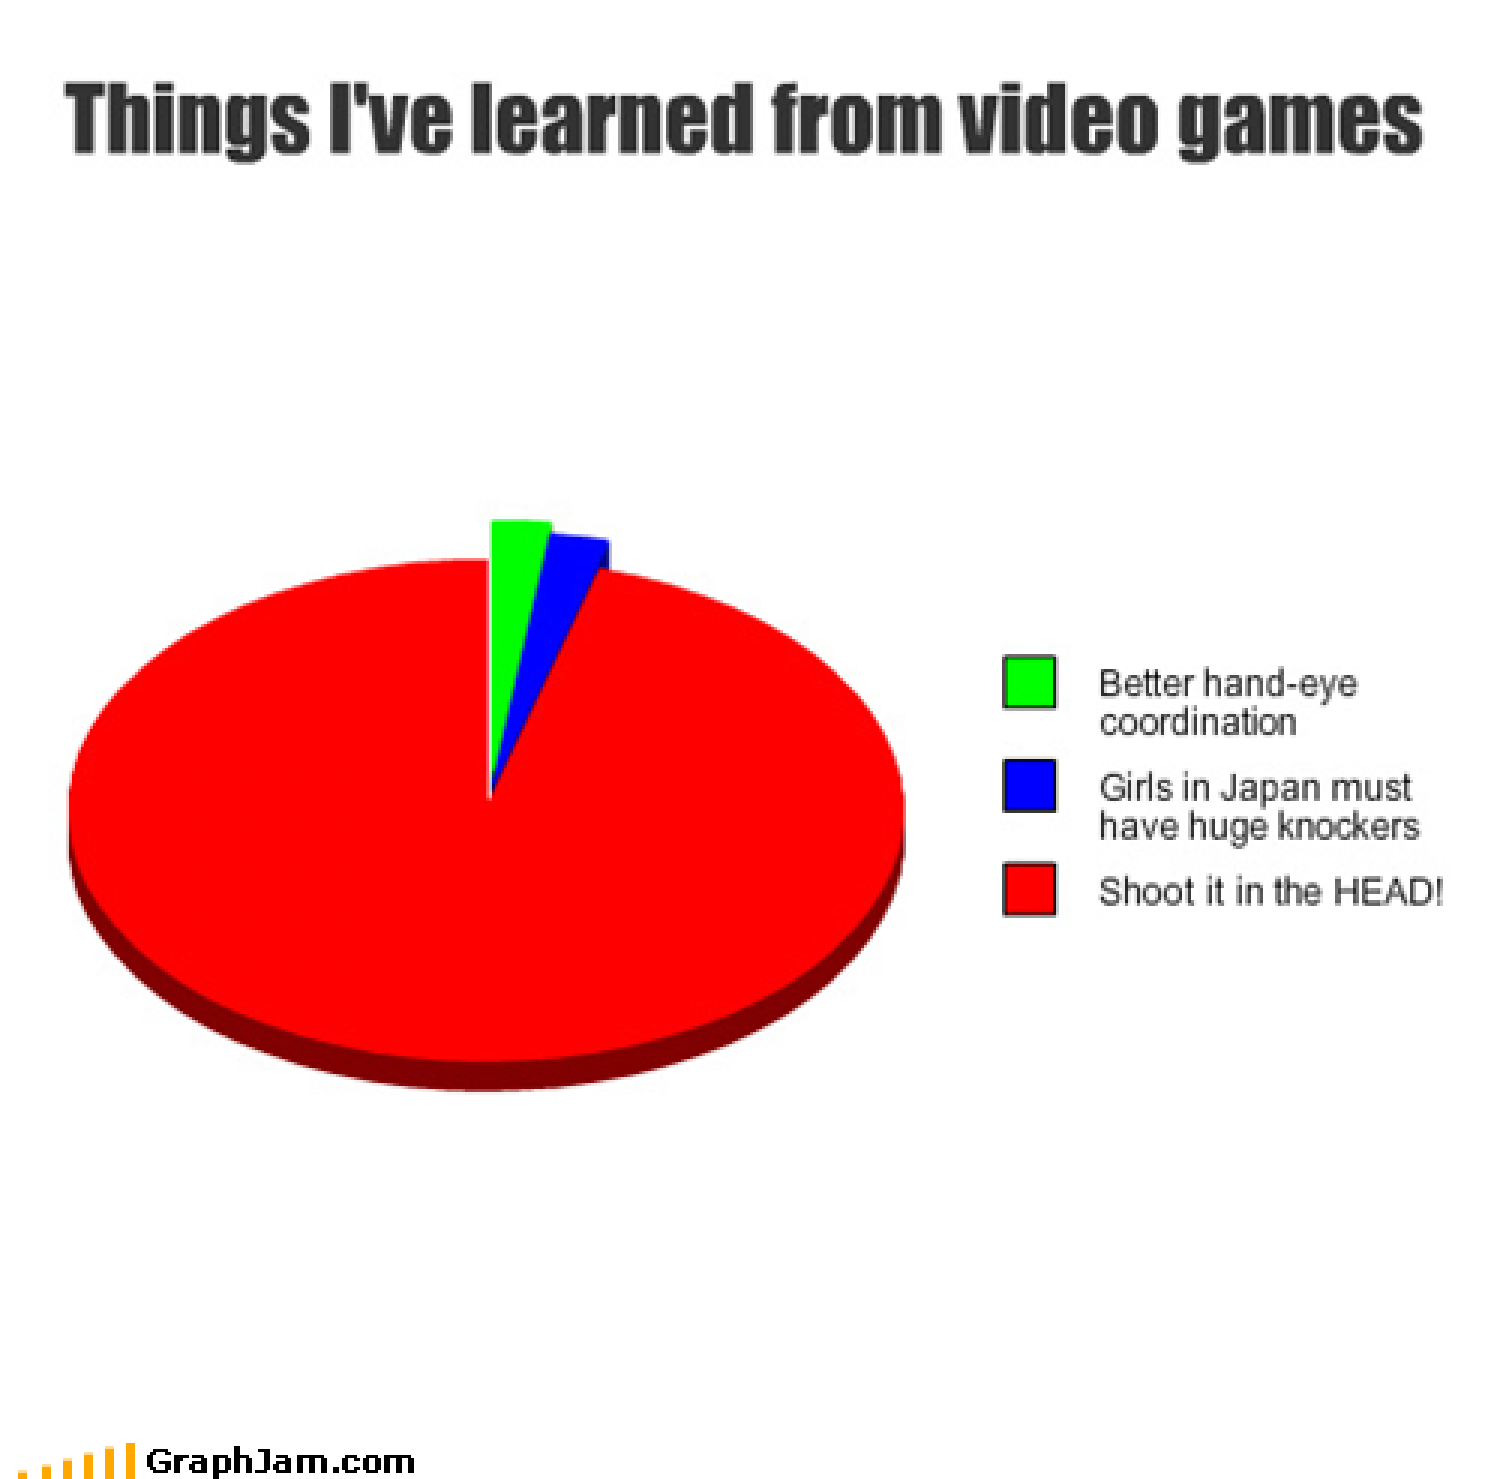 Things I've Learned from Video Games Infographic